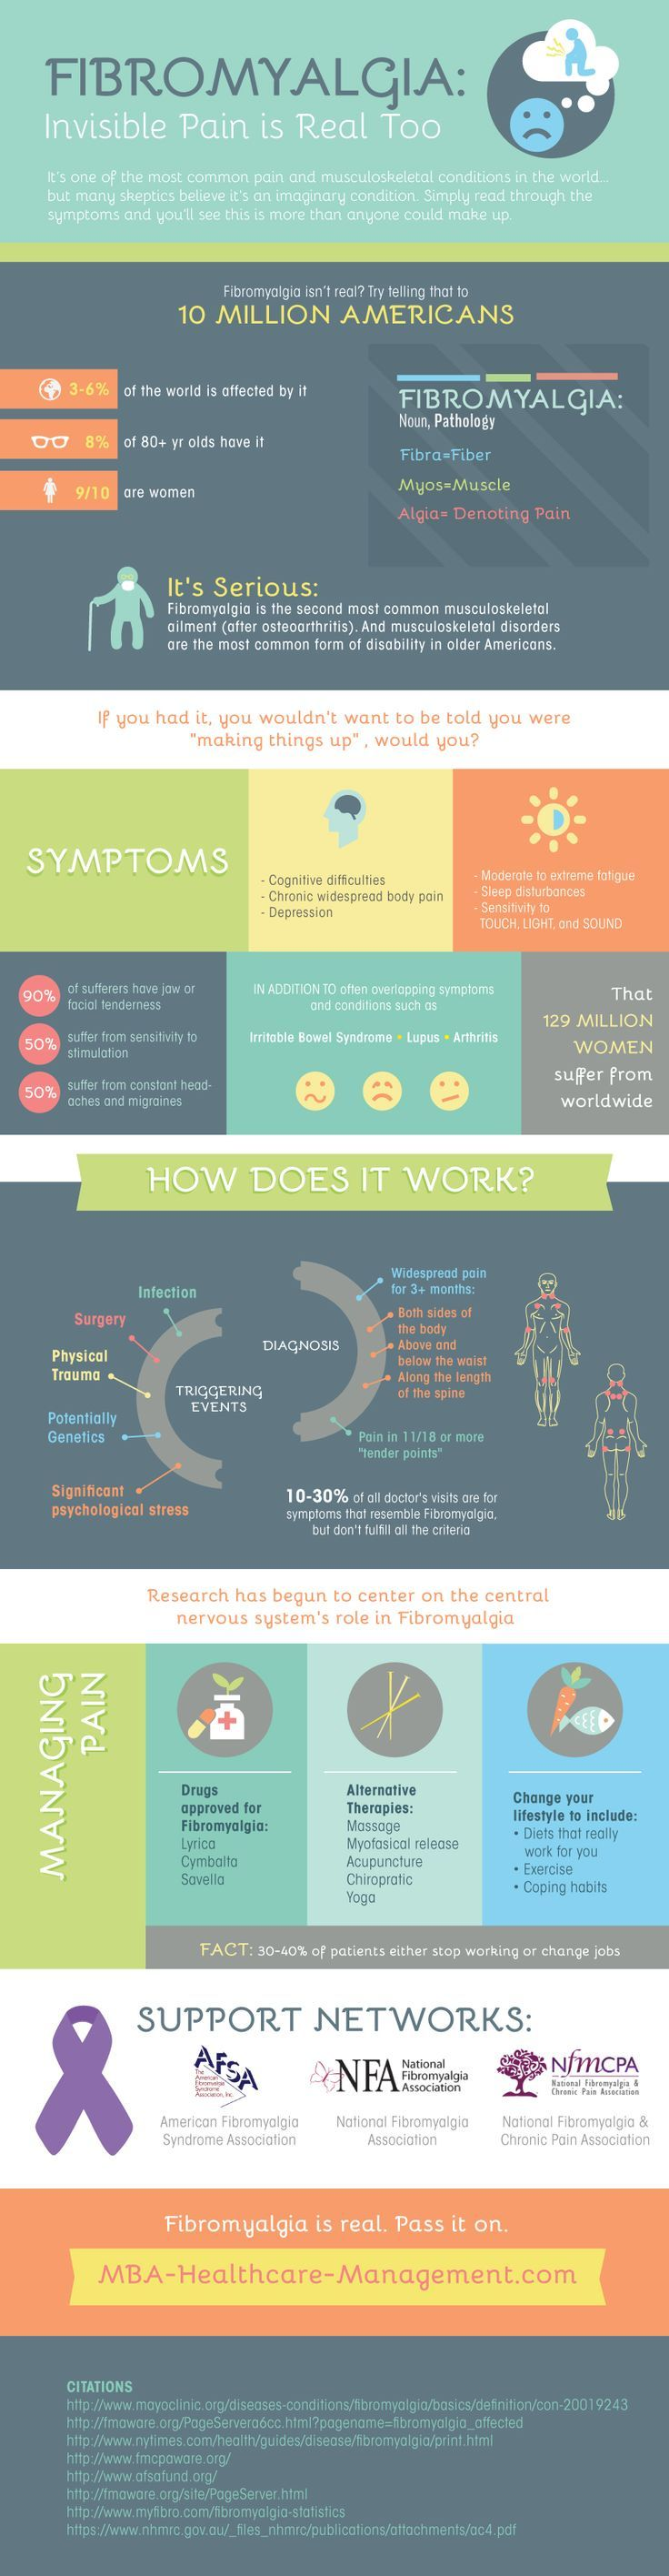 "Fibromyalgia pain relief  Fibromyalgia Infographic ""Fibromyalgia affects as many as 10 million Americans ages 18 and older, and 3% to 6% of the global population. Ouch! This infographic reveals what you need to know about this debilitating affliction, and what to do about it to manage the pain:"" +THE GLUTEN FREE GRAINS GUIDE ""One of the most Popular Fibromyalgia diets is the Gluten Free Diet. …"" link Note:  ' ""…Quinoa, it contains soap-like molecules called saponins. Unlike gluten, which…"